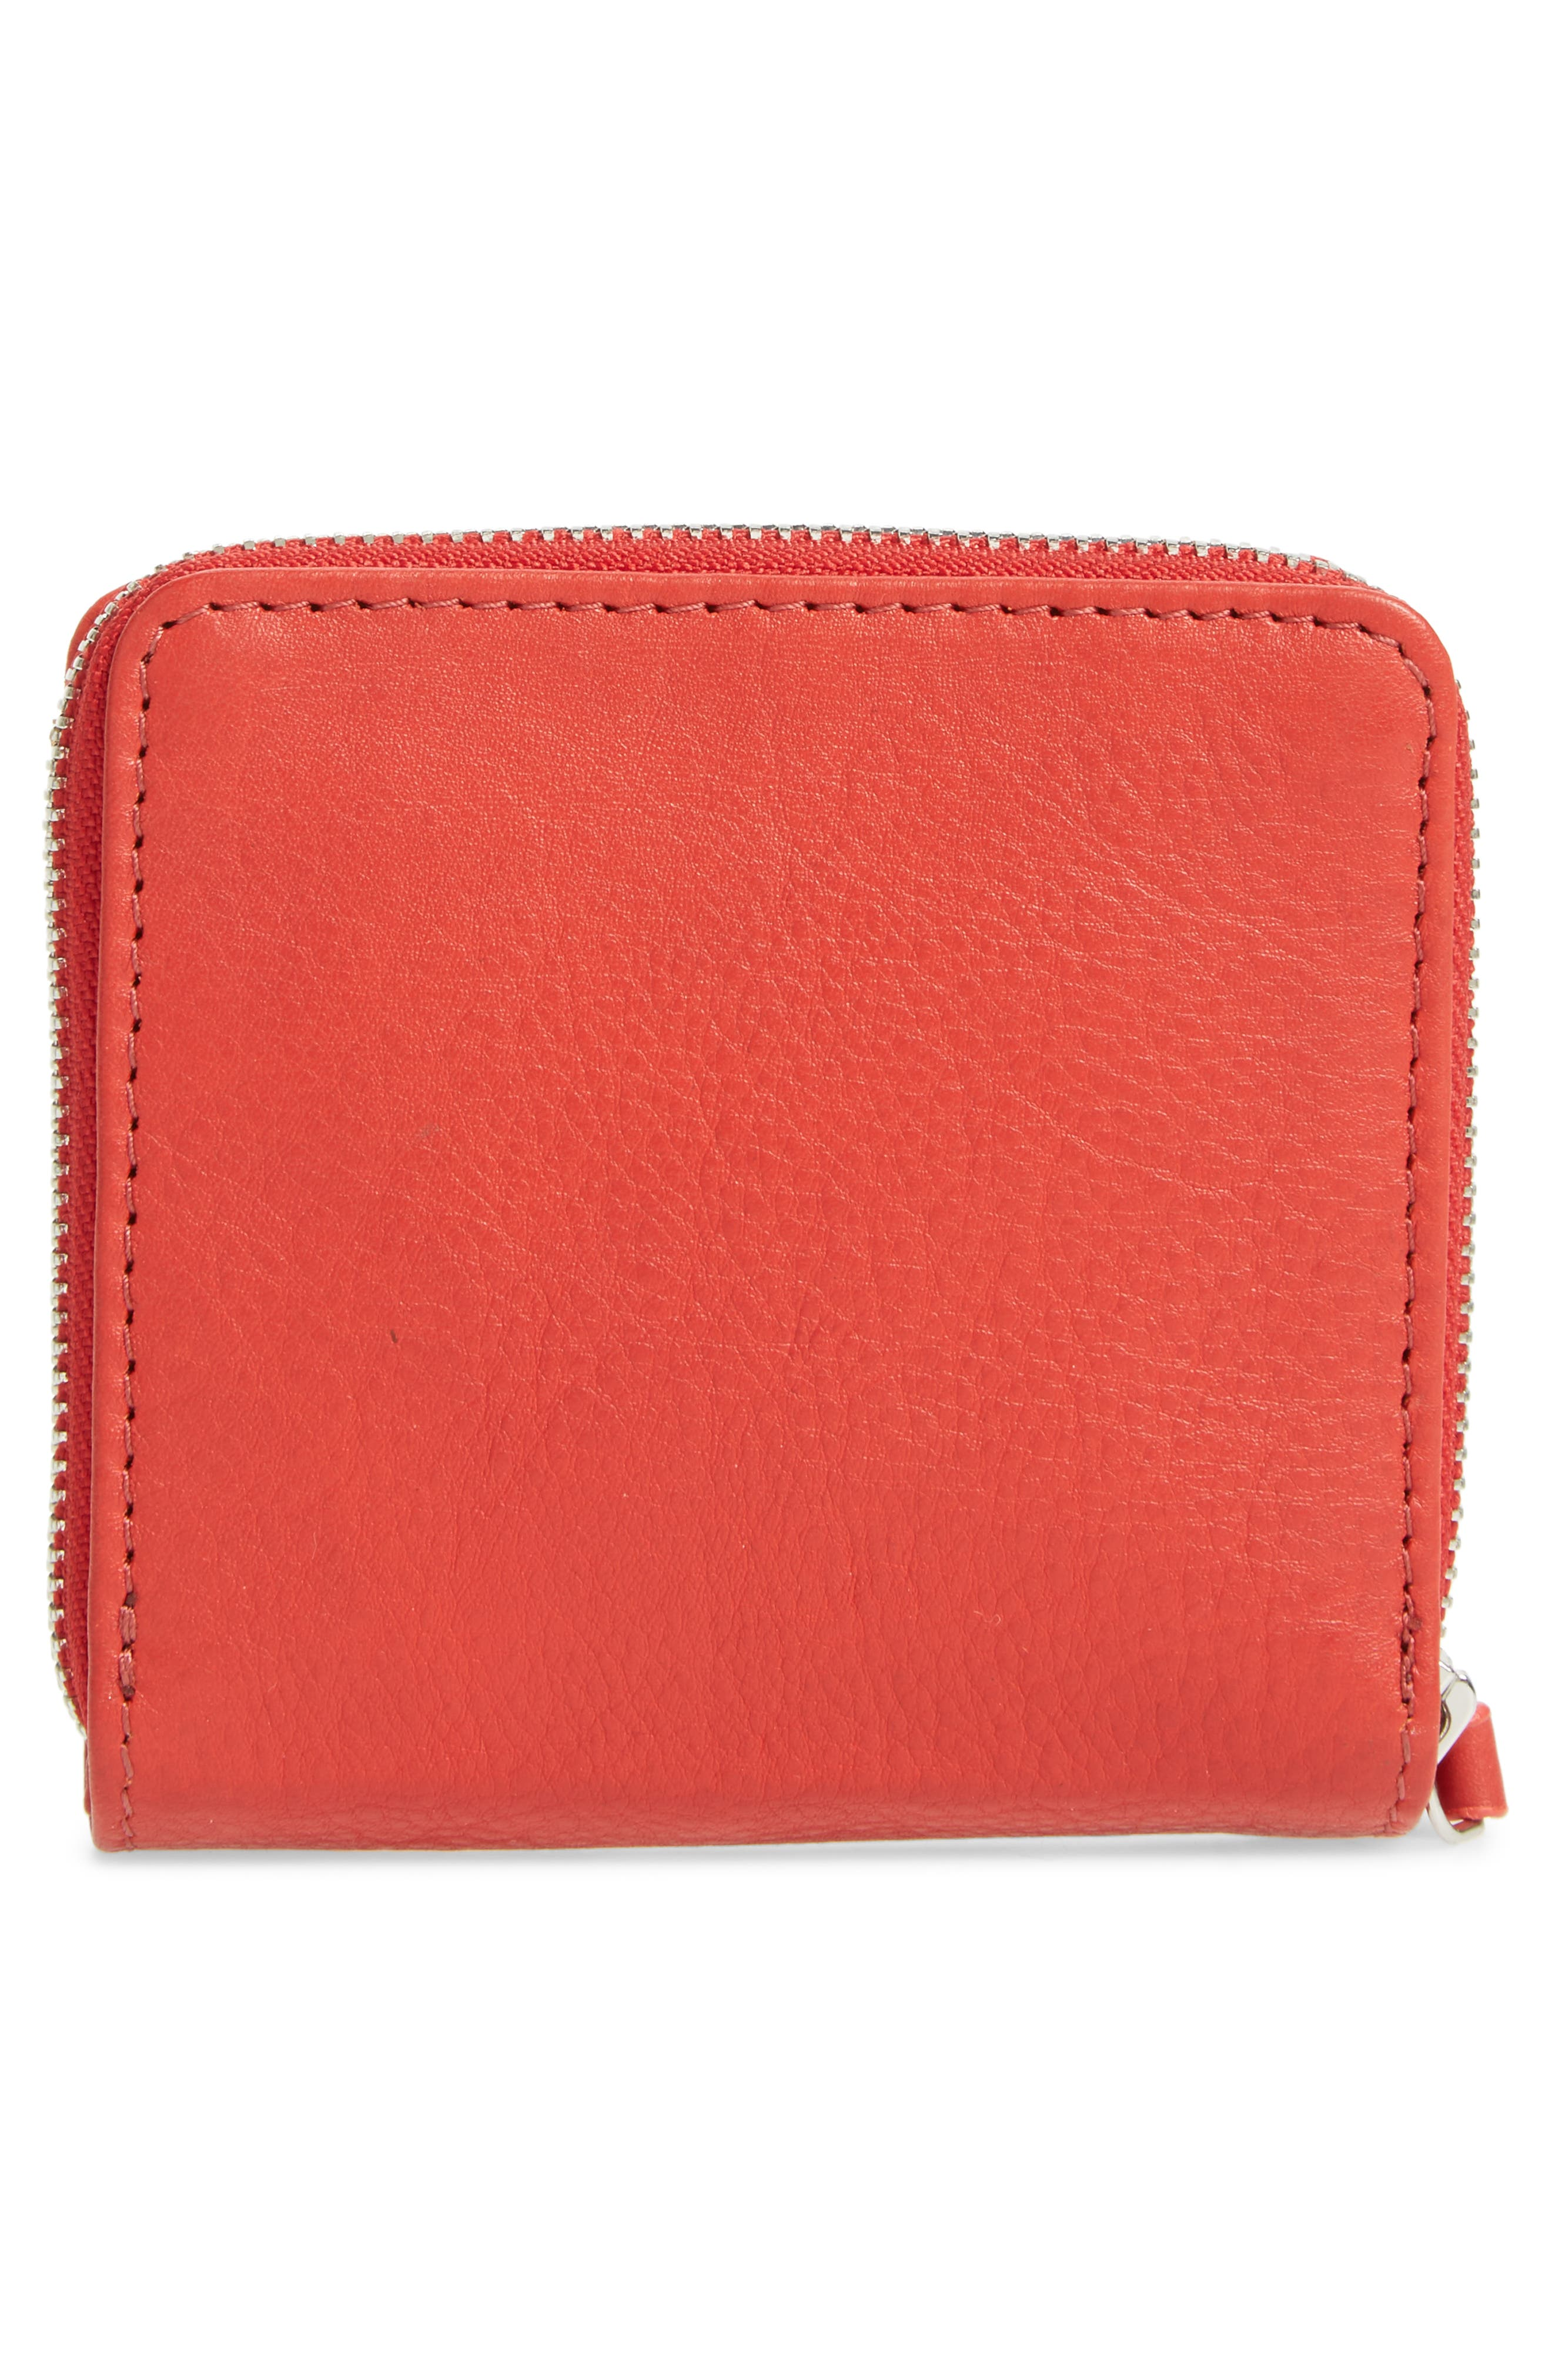 Leather Zip Around Wallet,                             Alternate thumbnail 4, color,                             Red